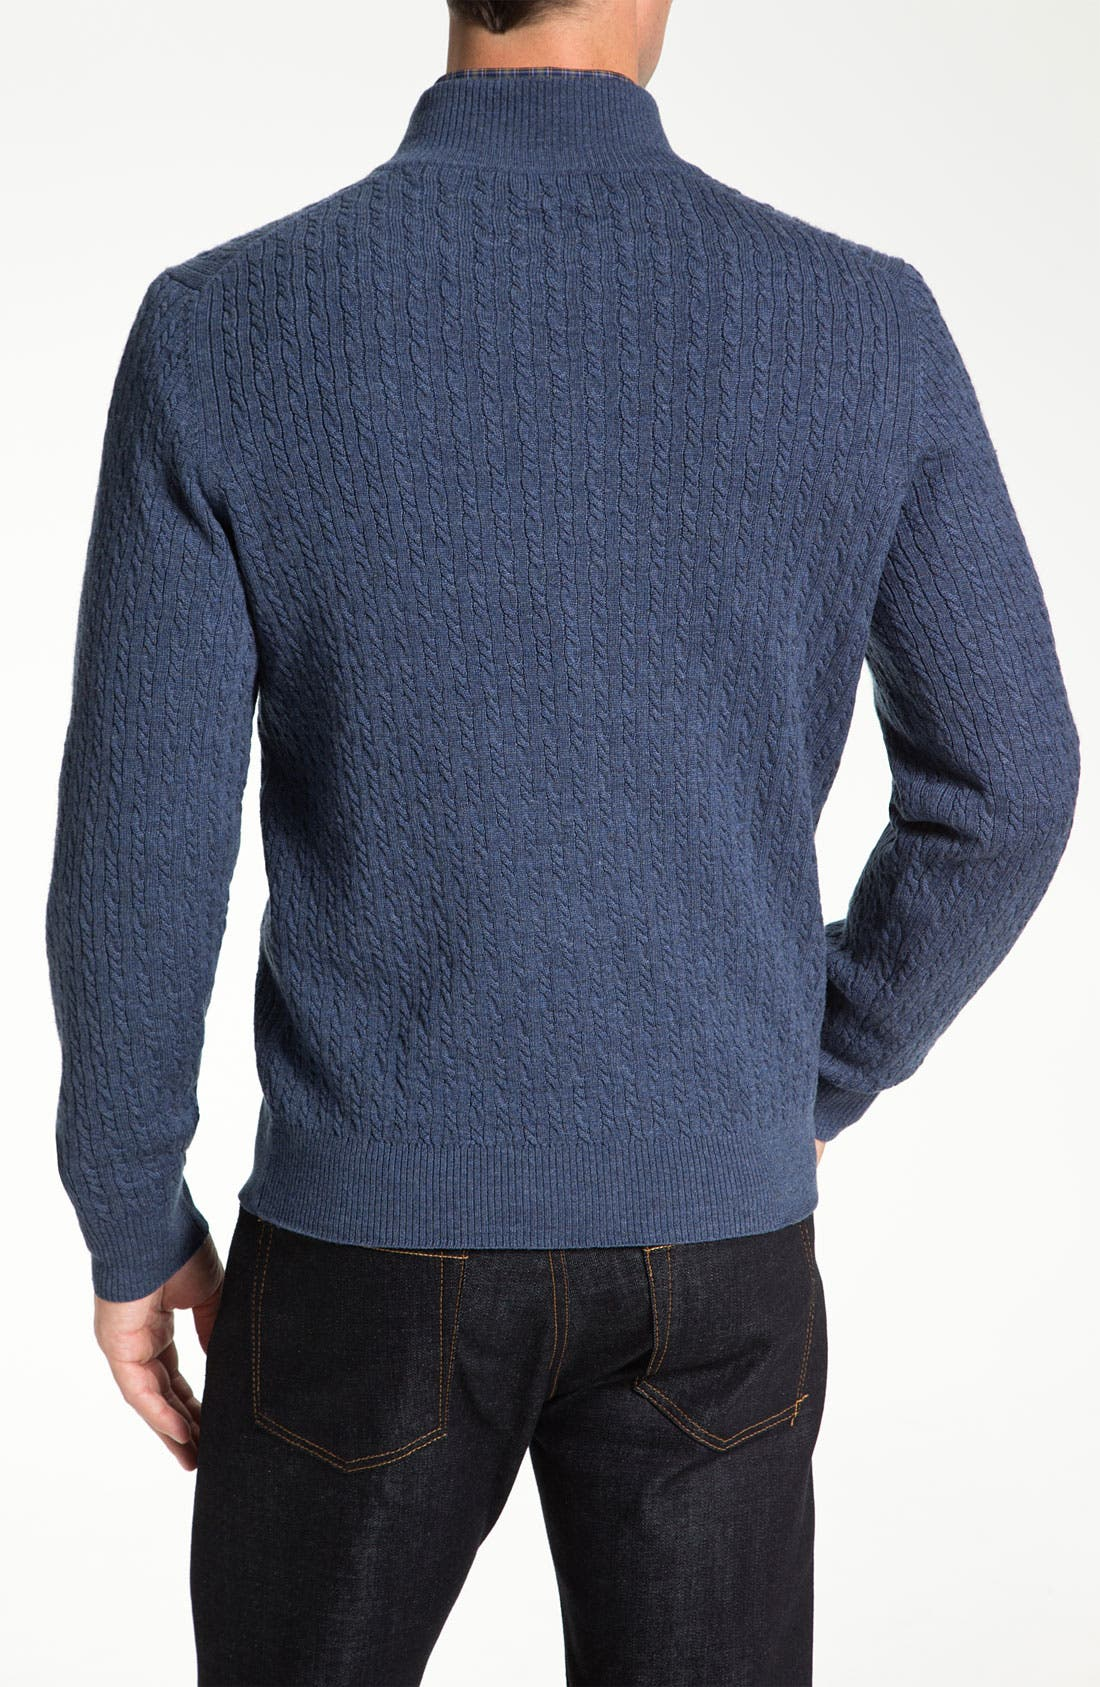 Alternate Image 2  - Robert Talbott Cable Knit Merino Wool Sweater (Online Only)